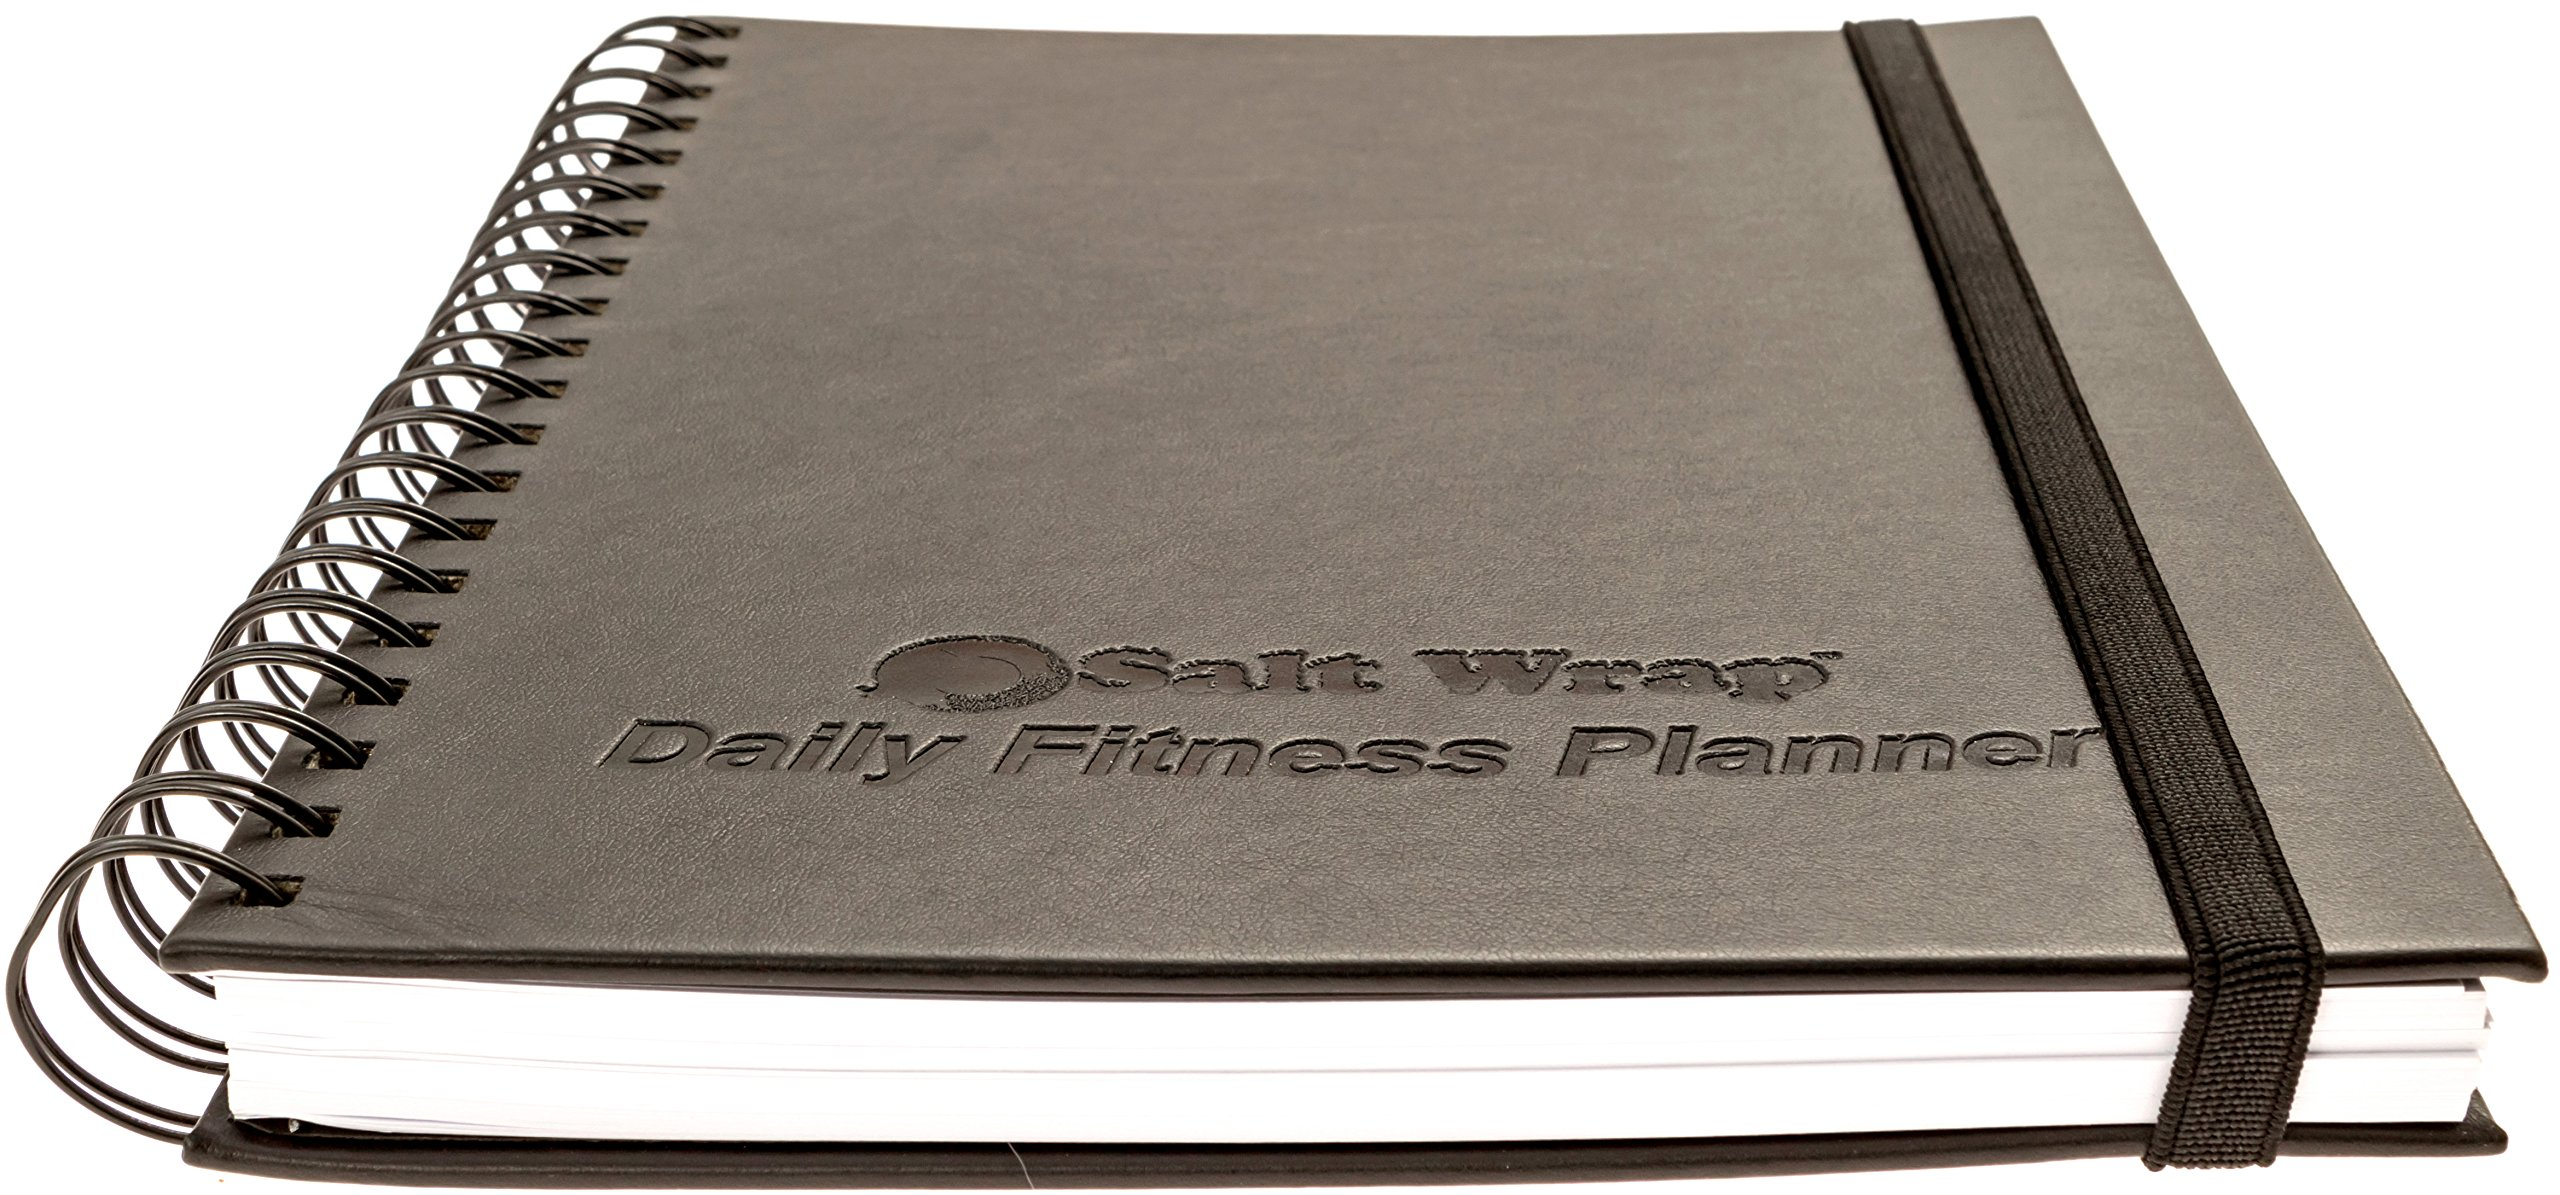 """SaltWrap The Daily Fitness Planner - Best Weight Training Log, Food Journal and Fitness Tracker (Daily & Weekly Pages + Goal Tracking Templates) – Spiral-bound, 280 pages (16 weeks) Size 7"""" x 10"""""""